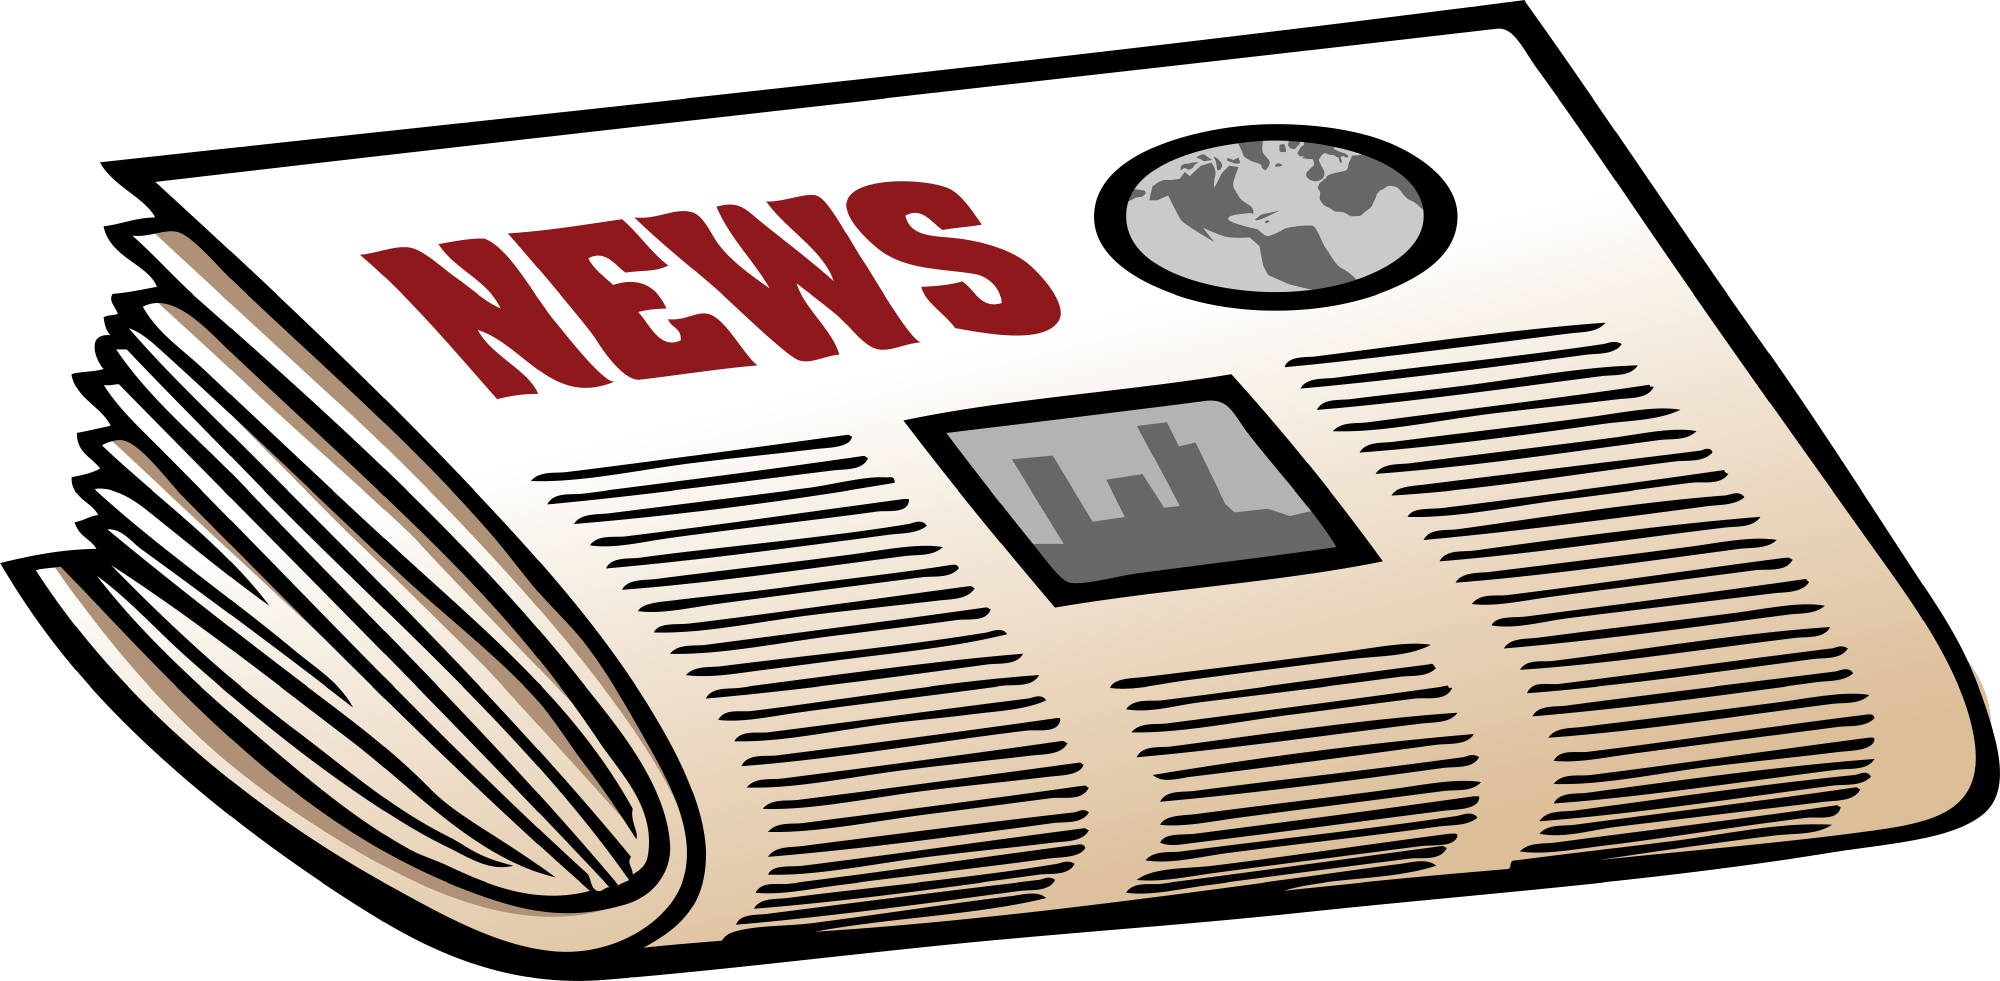 svg royalty free download Newspaper clipart. Bold newspaperclipart